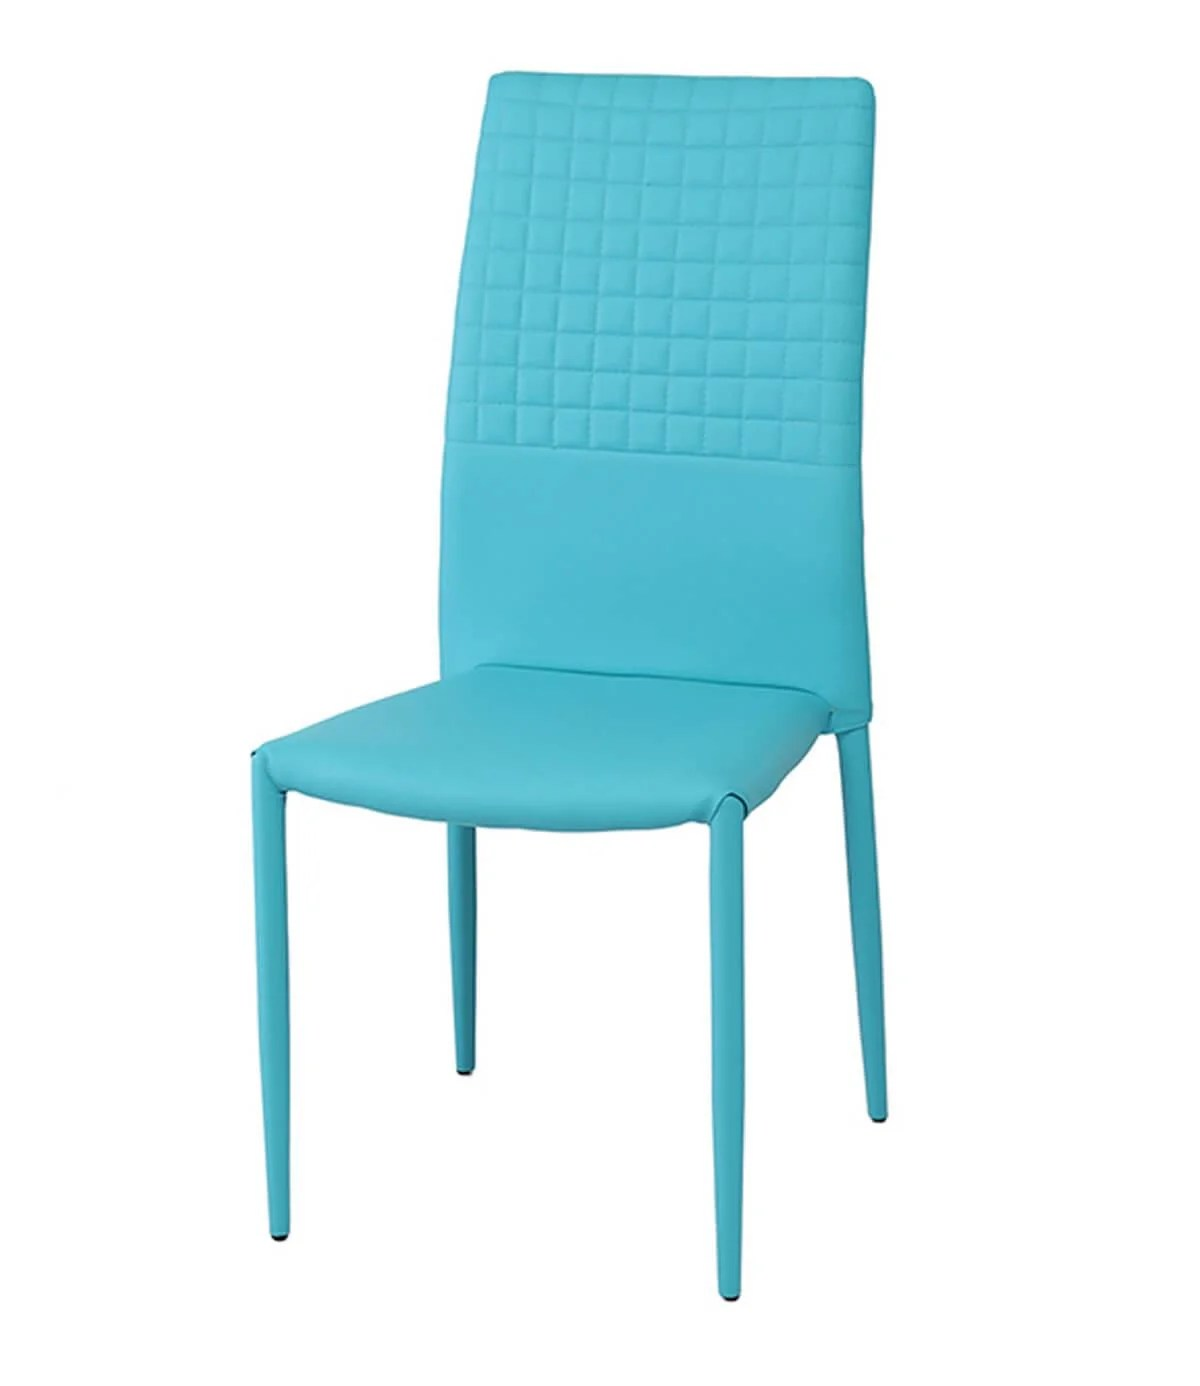 Aqua Dining Chairs Pack Of 4 Square Aqua Dining Chairs